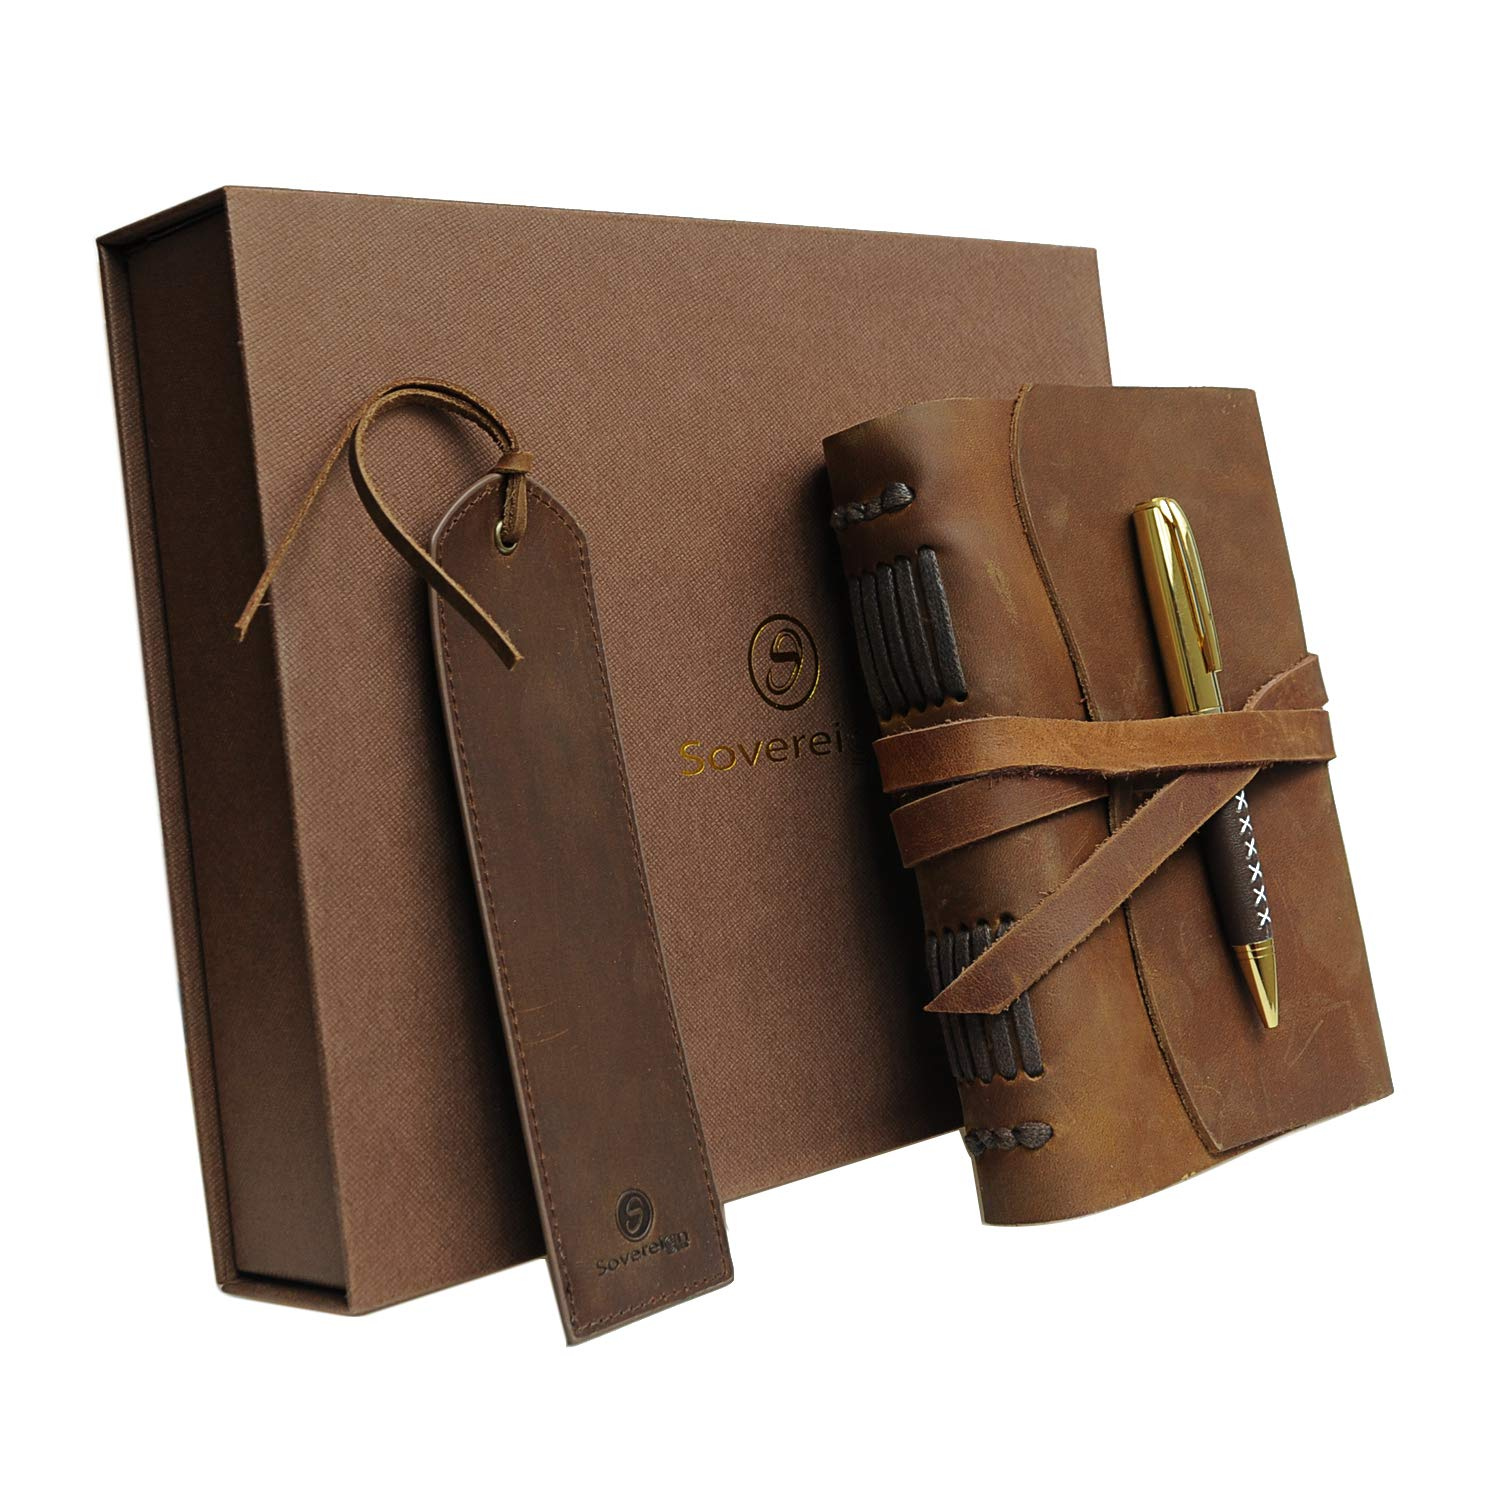 Leather Journal Gift Set with Antique Leather Bookmark + Pen, Handmade Writing Notebook 7x5 Inches Unlined Leather Bound Daily Notepad for Men & Women, Best Luxury Gift Box Travel Diary for All Ages